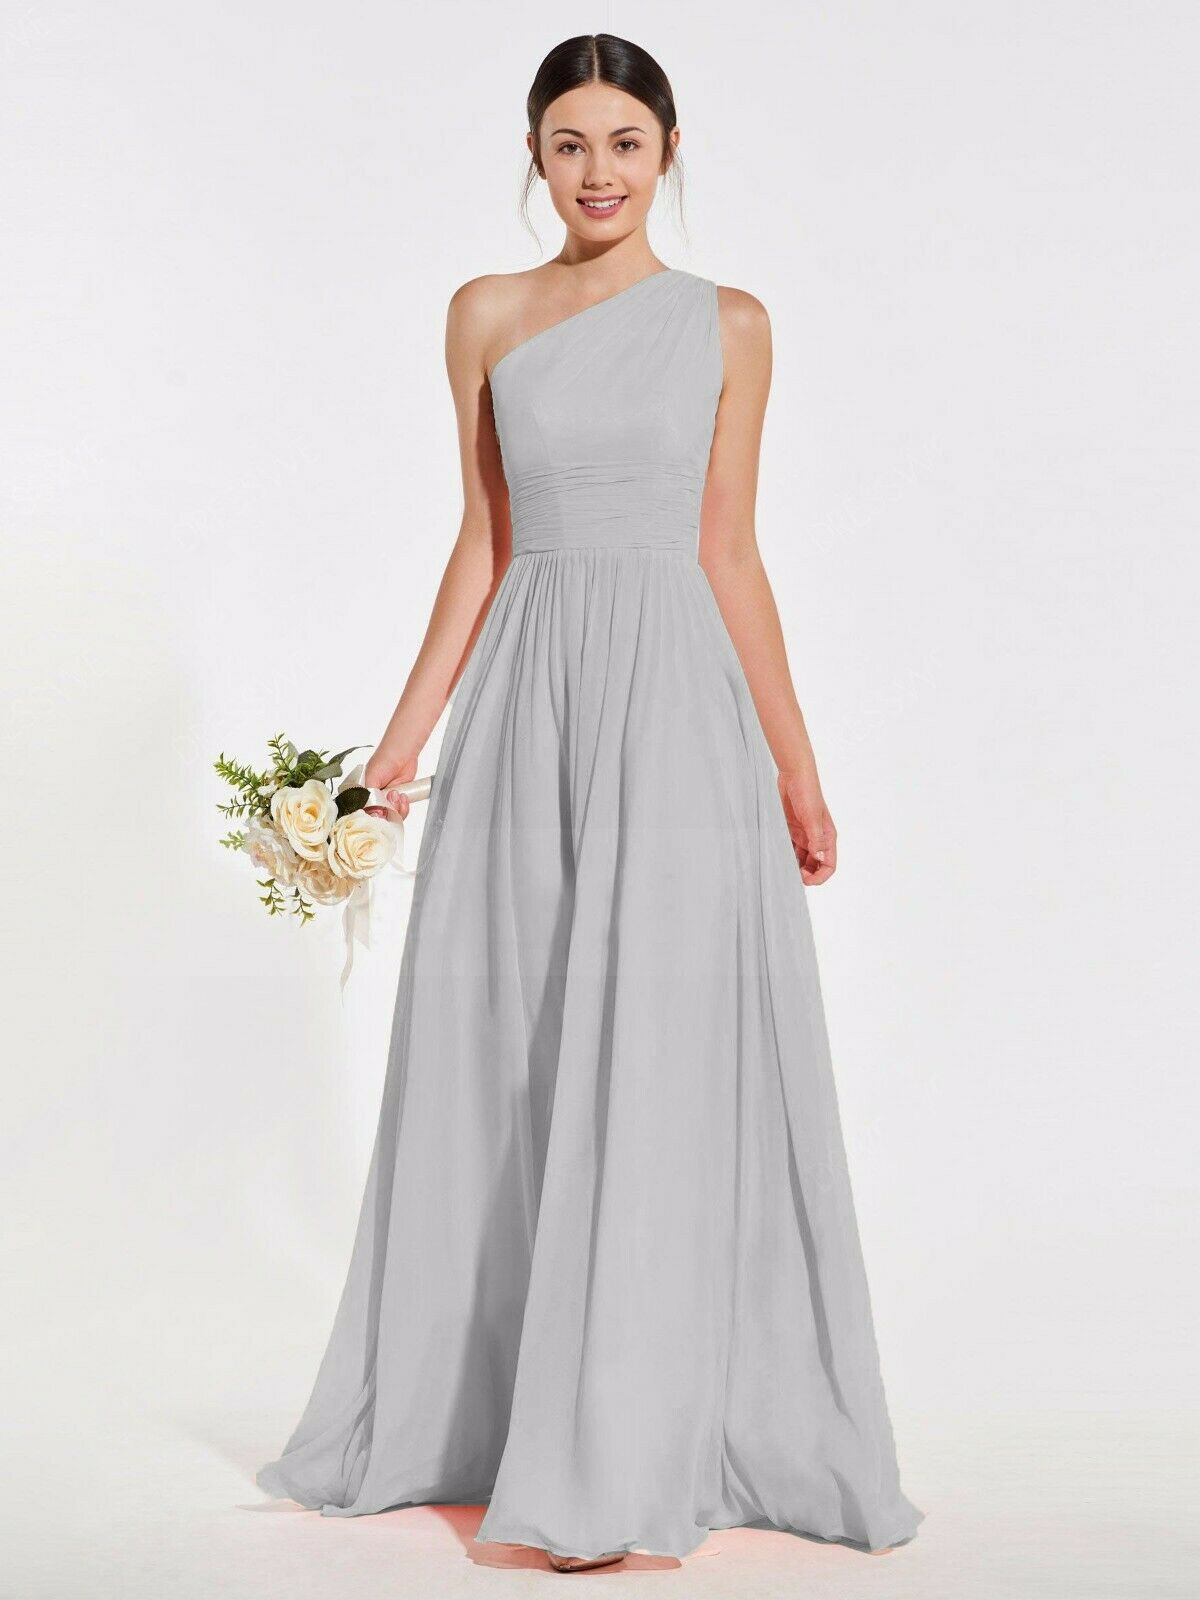 Grecian Wedding Dress.Lindsey Silver Grey